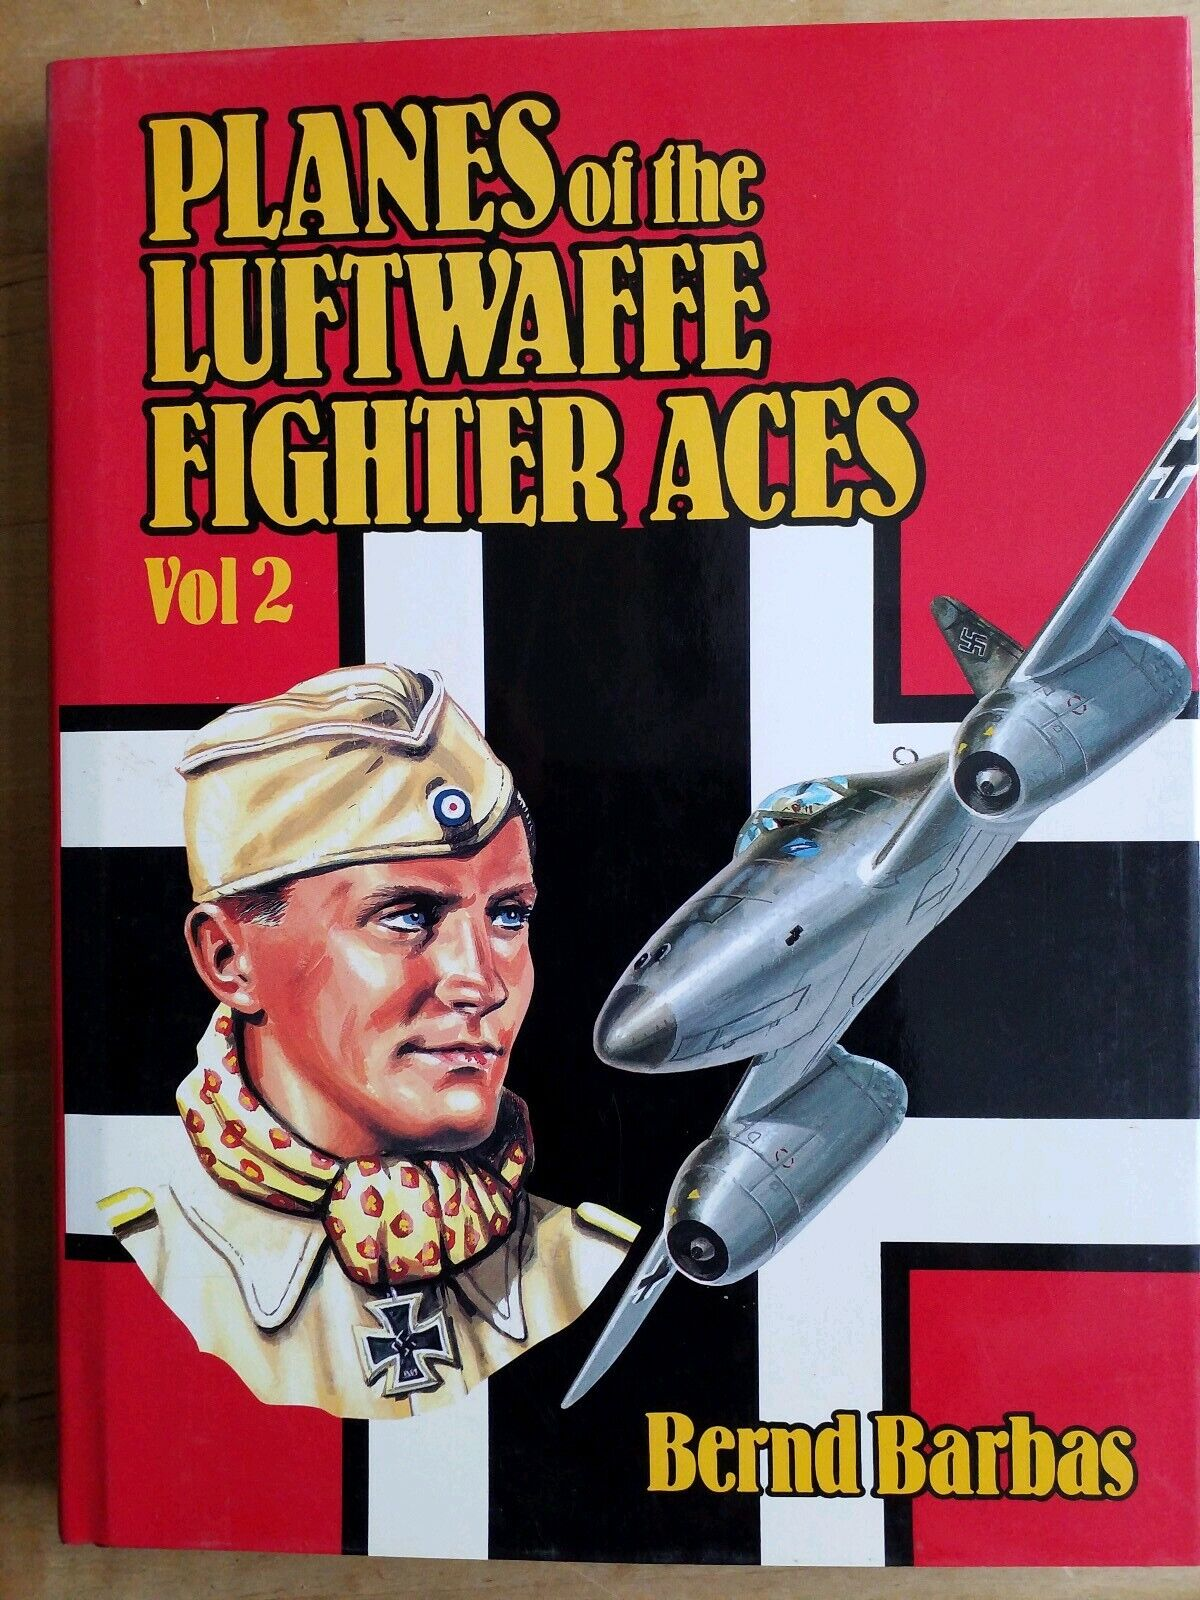 Planes of the Luftwaffe  Fighter Aces  Vol. 1 und Vol. 2